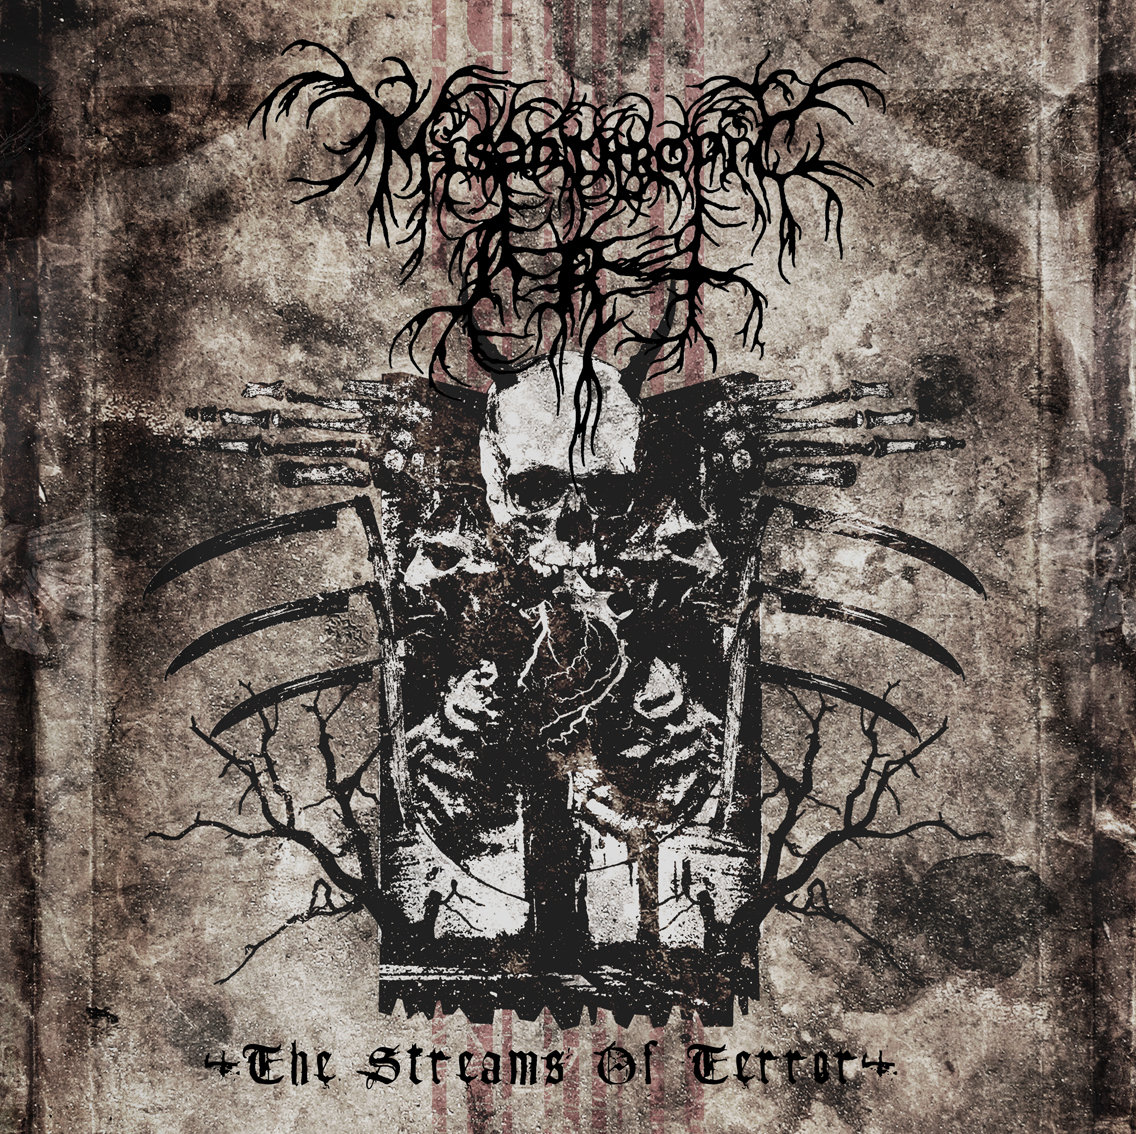 Misanthropic Art - The Streams Of Terror (2014)